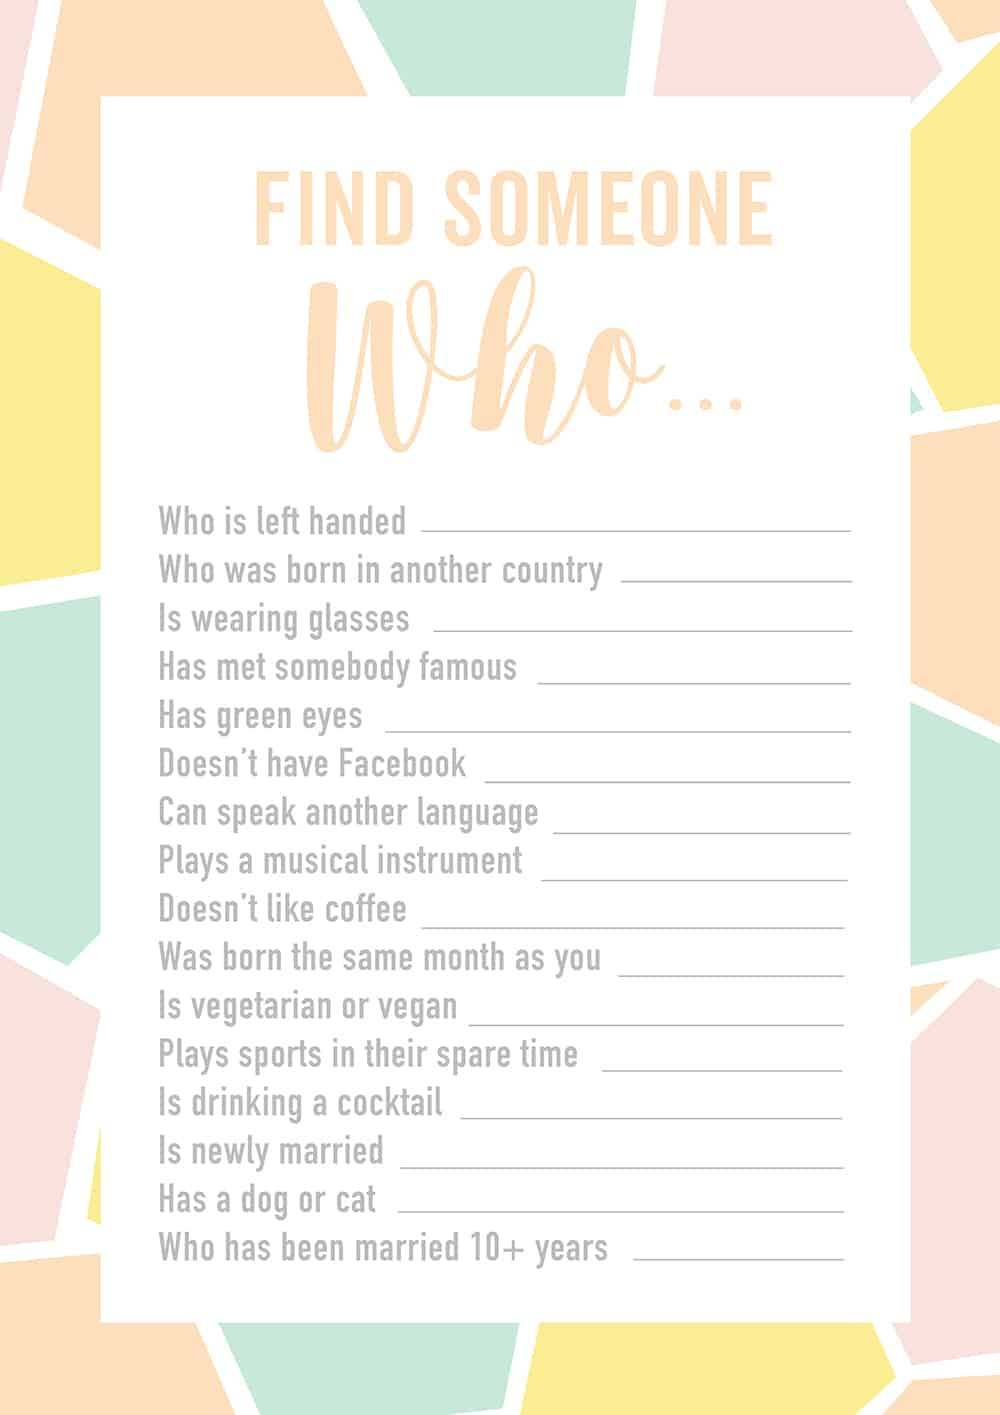 photo relating to Questions to Ask Wedding Venue Printable identified as Totally free PRINTABLE ENGAGEMENT Social gathering OR Wedding day ICE BREAKER Activity